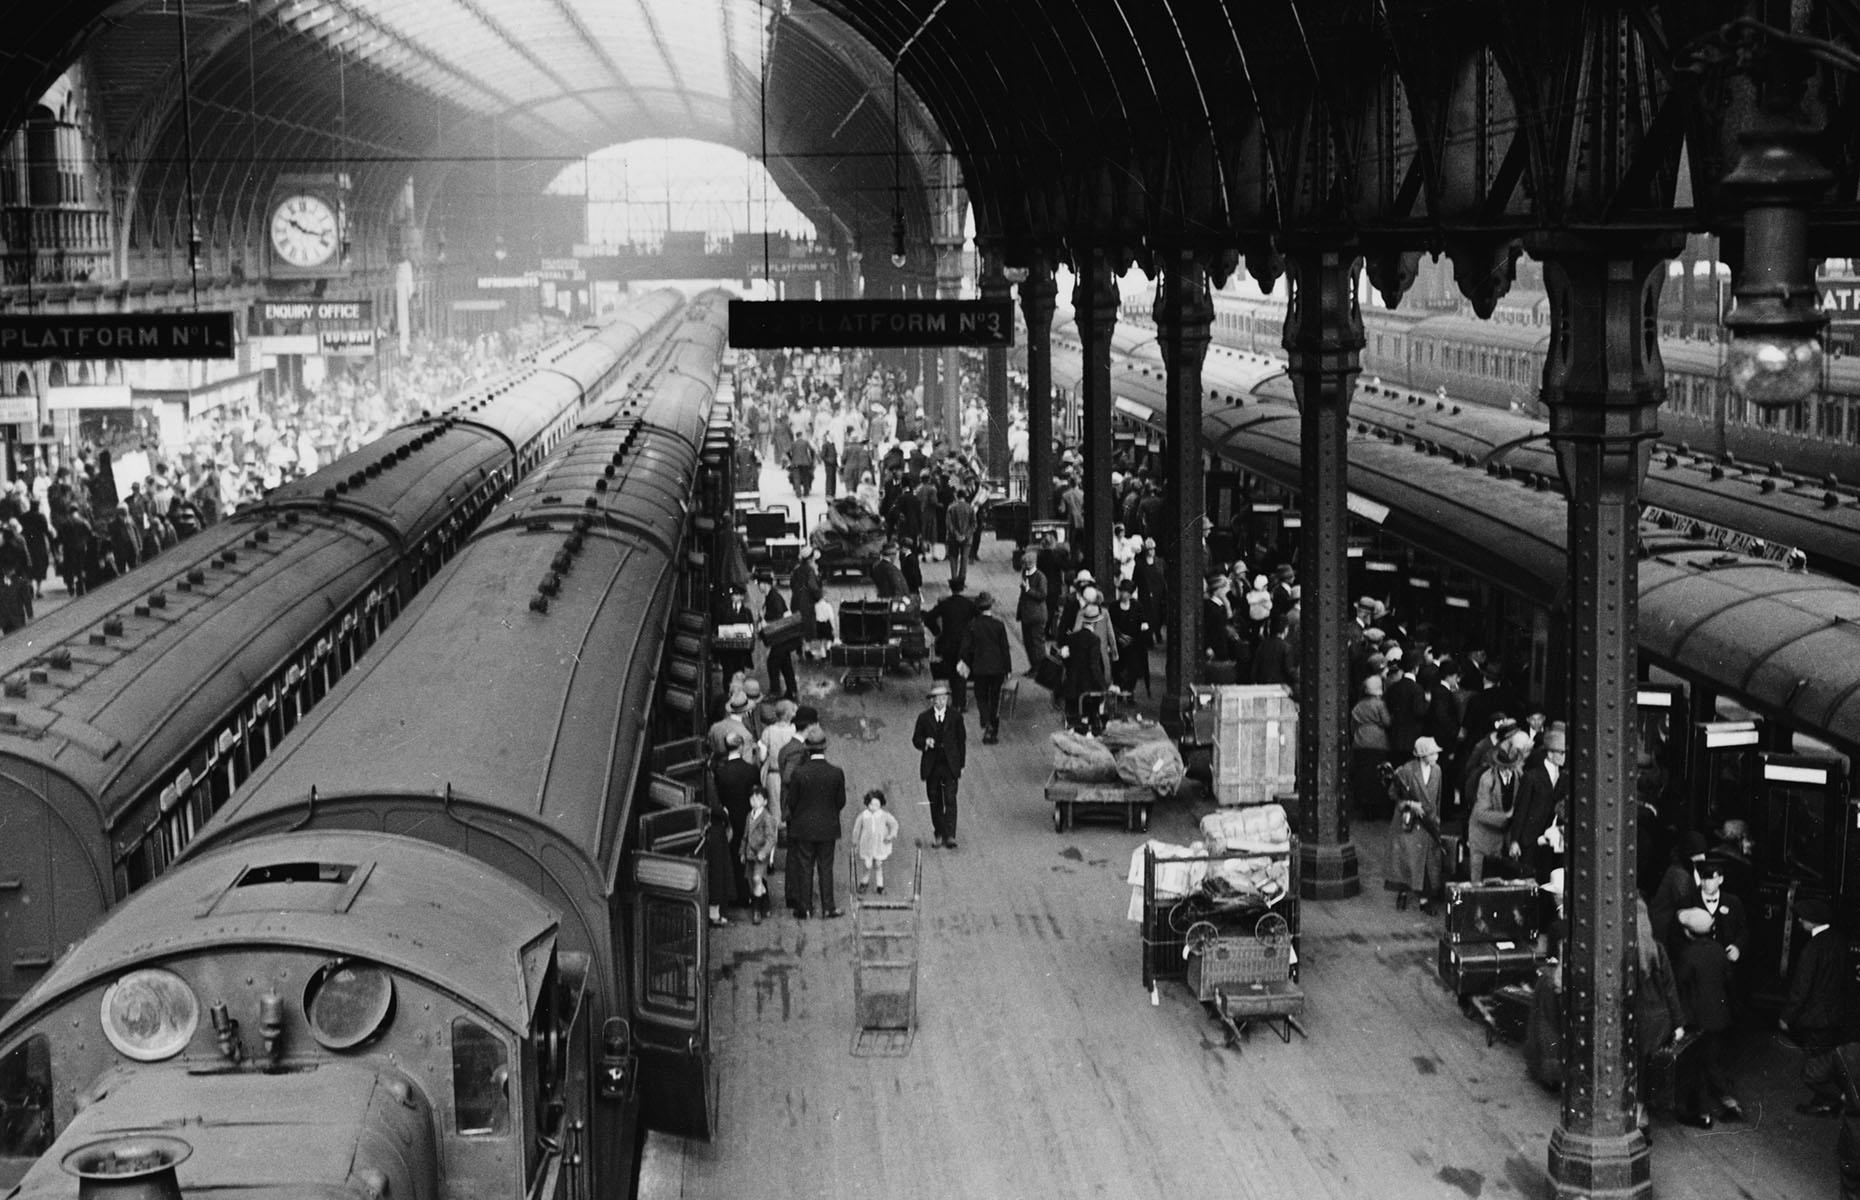 Slide 16 of 32: As summer arrived, Paddington Station in London, England, in June 1926 looked no different to how Stansted Airport does today before vacation season. Crowds are pictured waiting to board trains for Cornwall – an especially sough-after holiday destination for Londoners at the time.